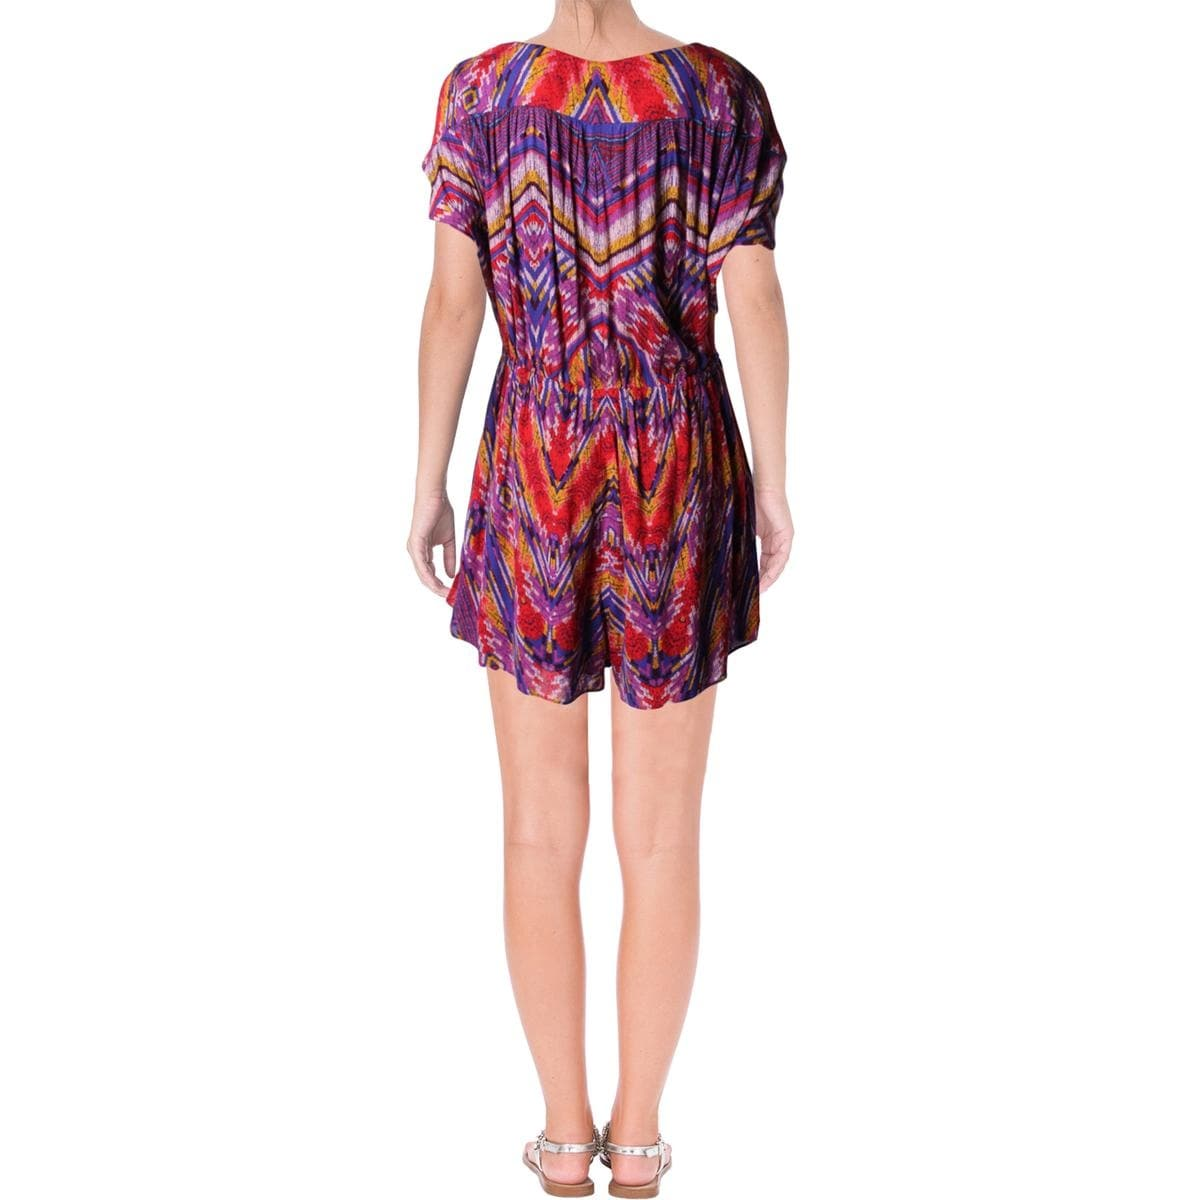 2fddcd147ed1 Shop Free People Womens Dream All Night Romper Printed Button Down - Free  Shipping On Orders Over  45 - Overstock - 22489968